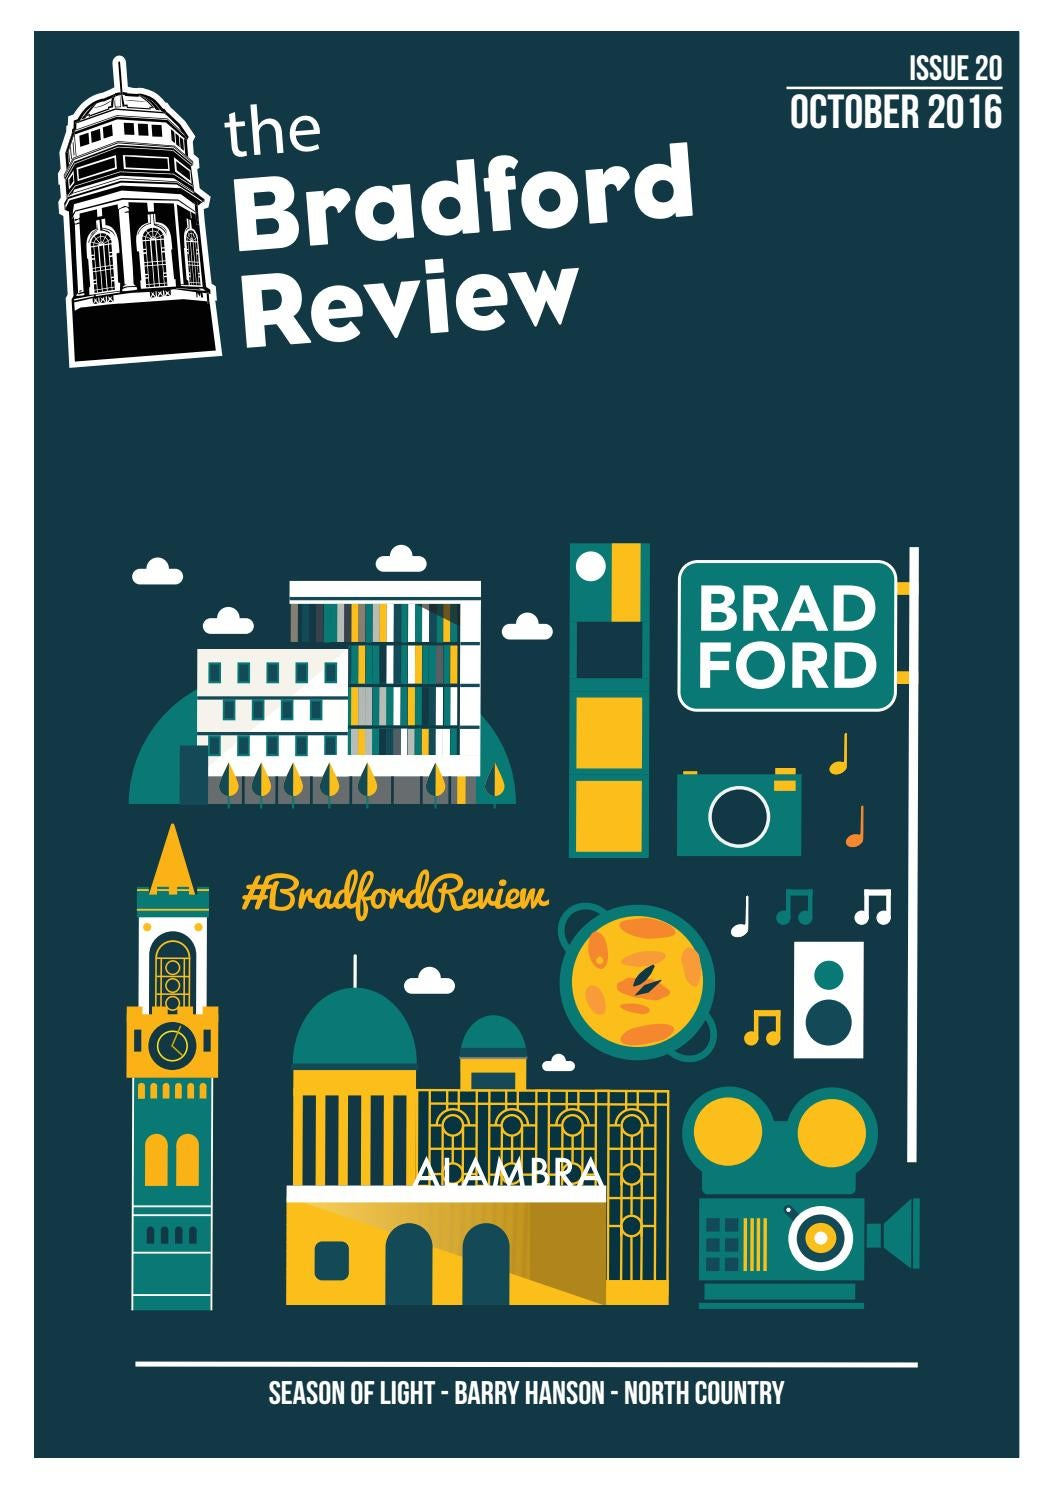 The bradford review issue 20 october 2016 by festival the bradford review issue 20 october 2016 by festival publications issuu malvernweather Image collections